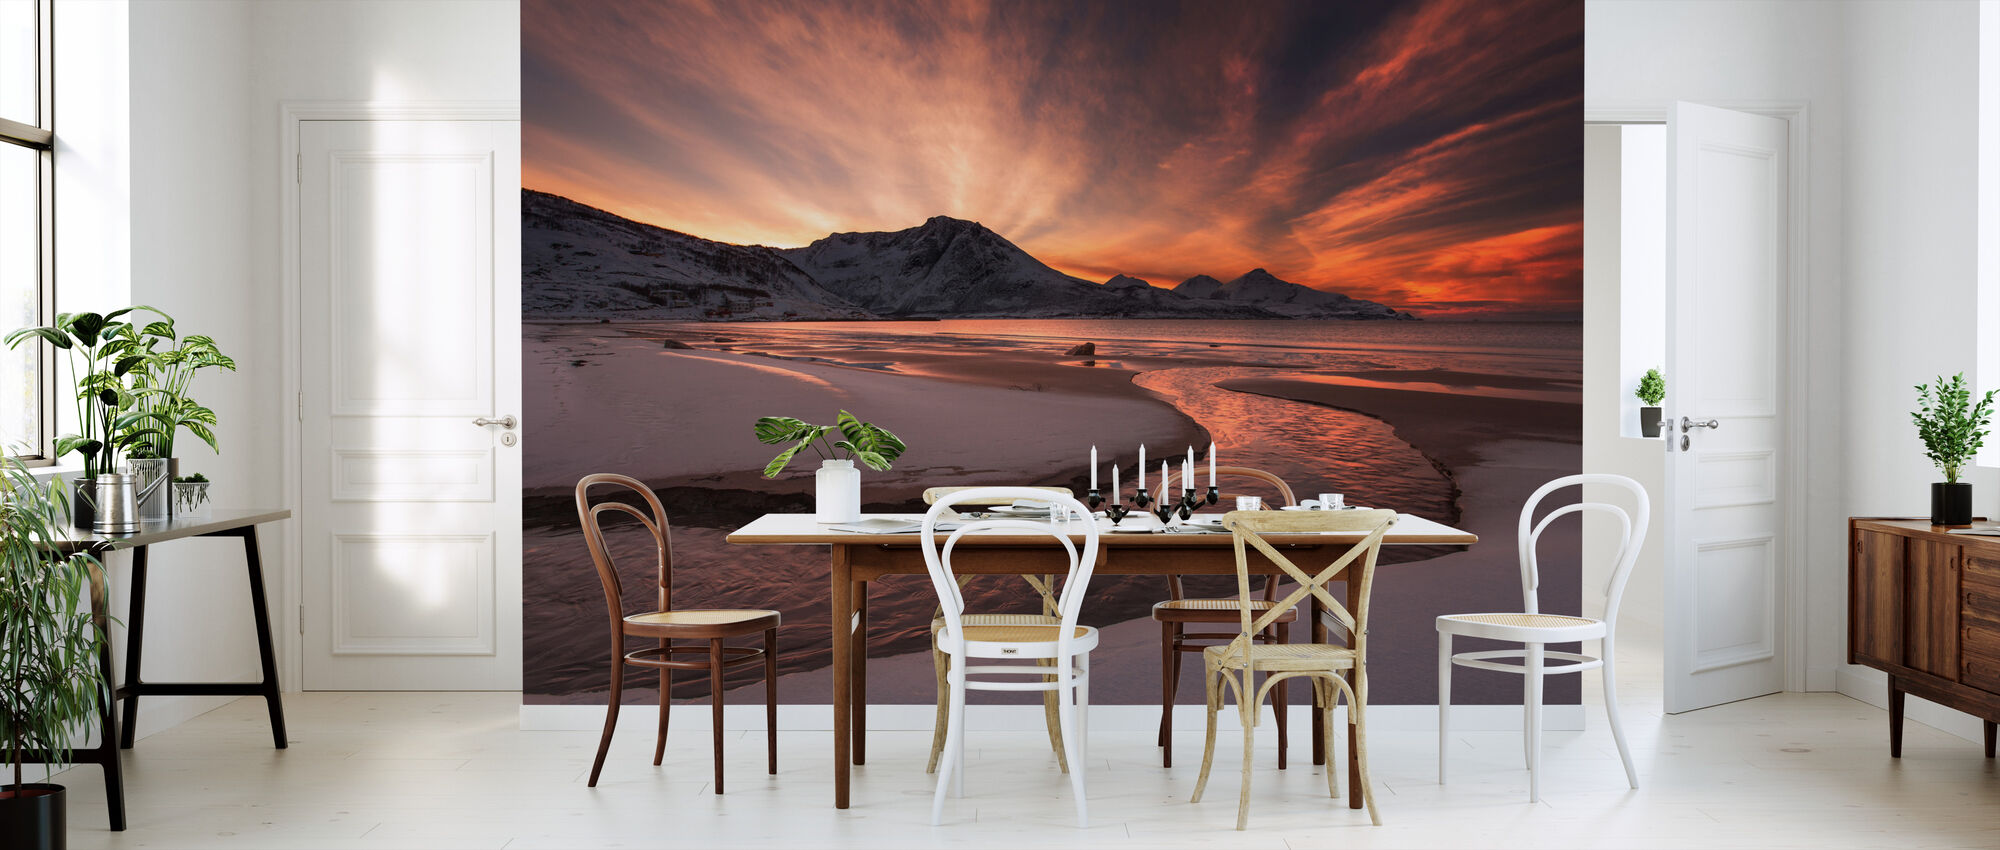 Golden Sunset in Norway - Wallpaper - Kitchen